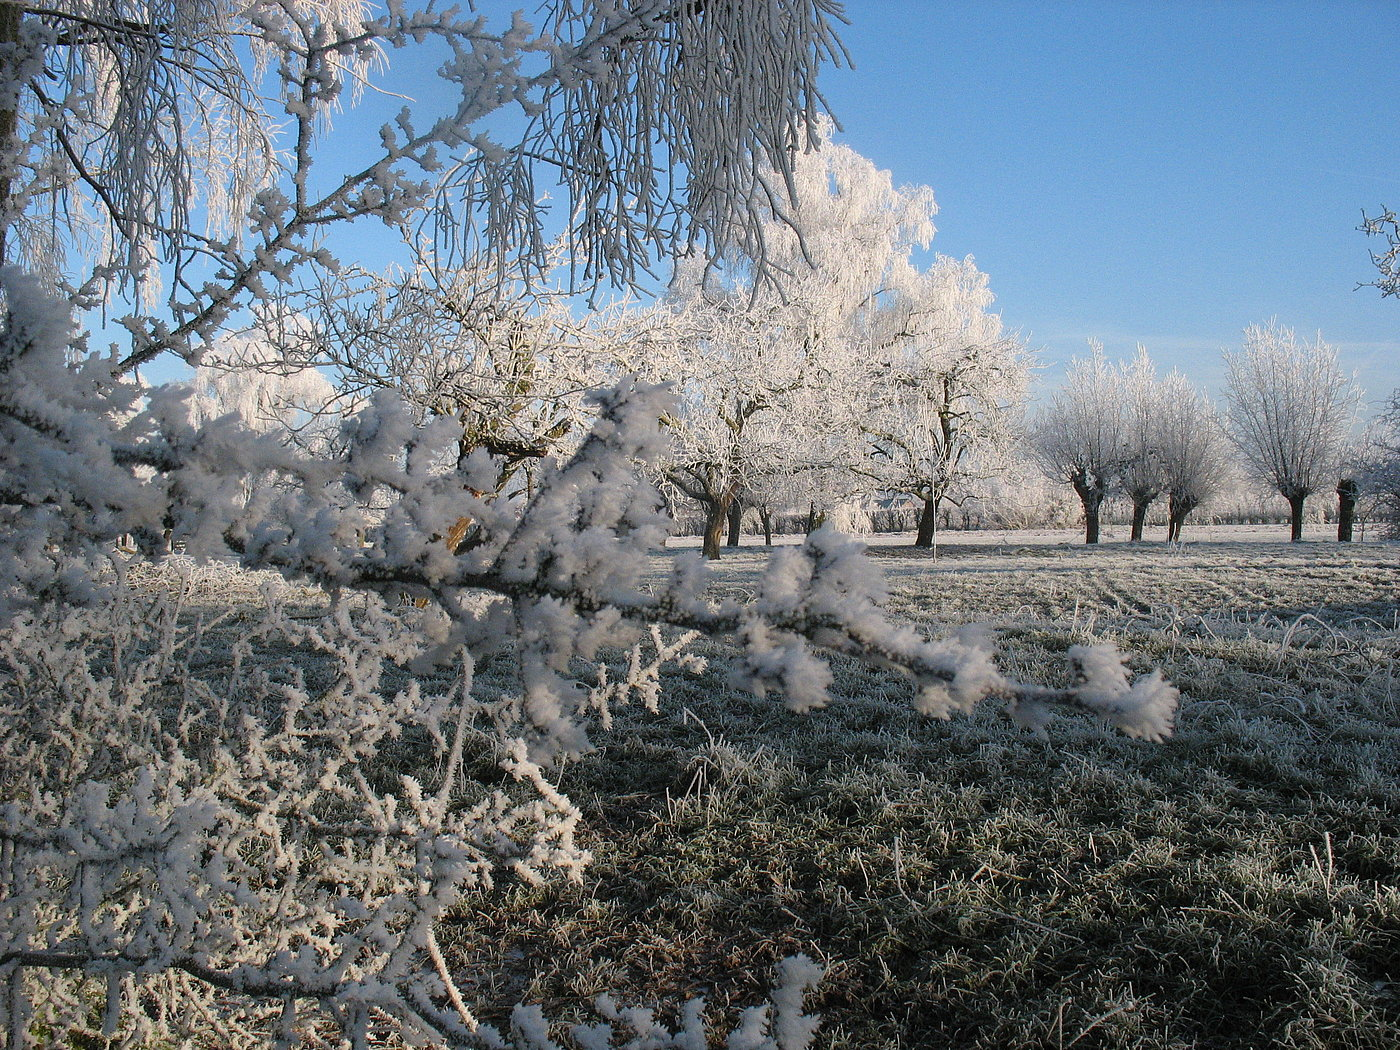 Lopikerhout in de winter